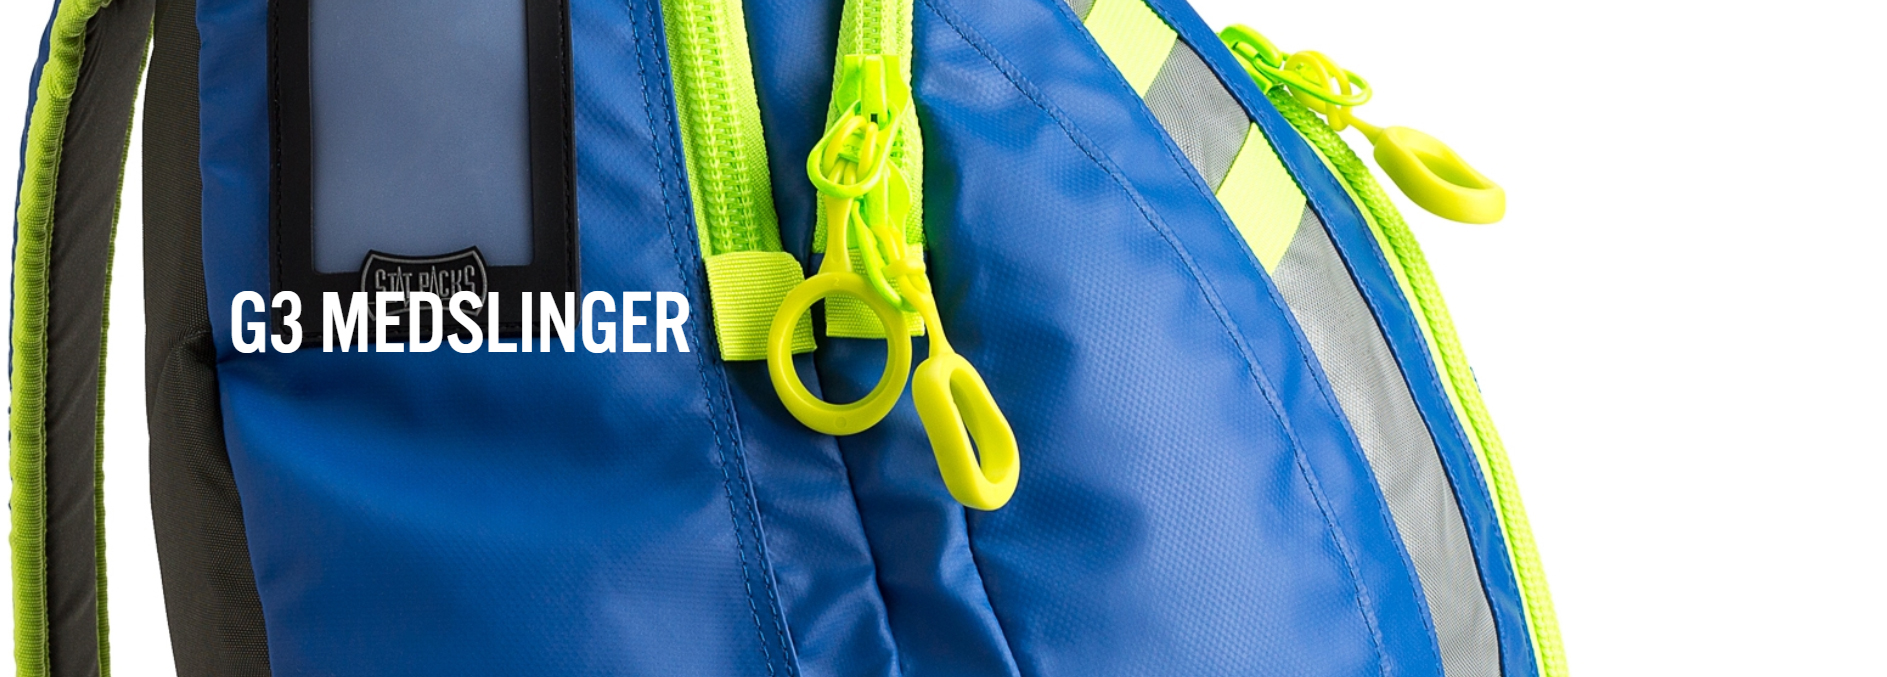 c61fd5db5e6811 The Med Slinger is the original EMT pack that doubles as a sports medicine  pack.